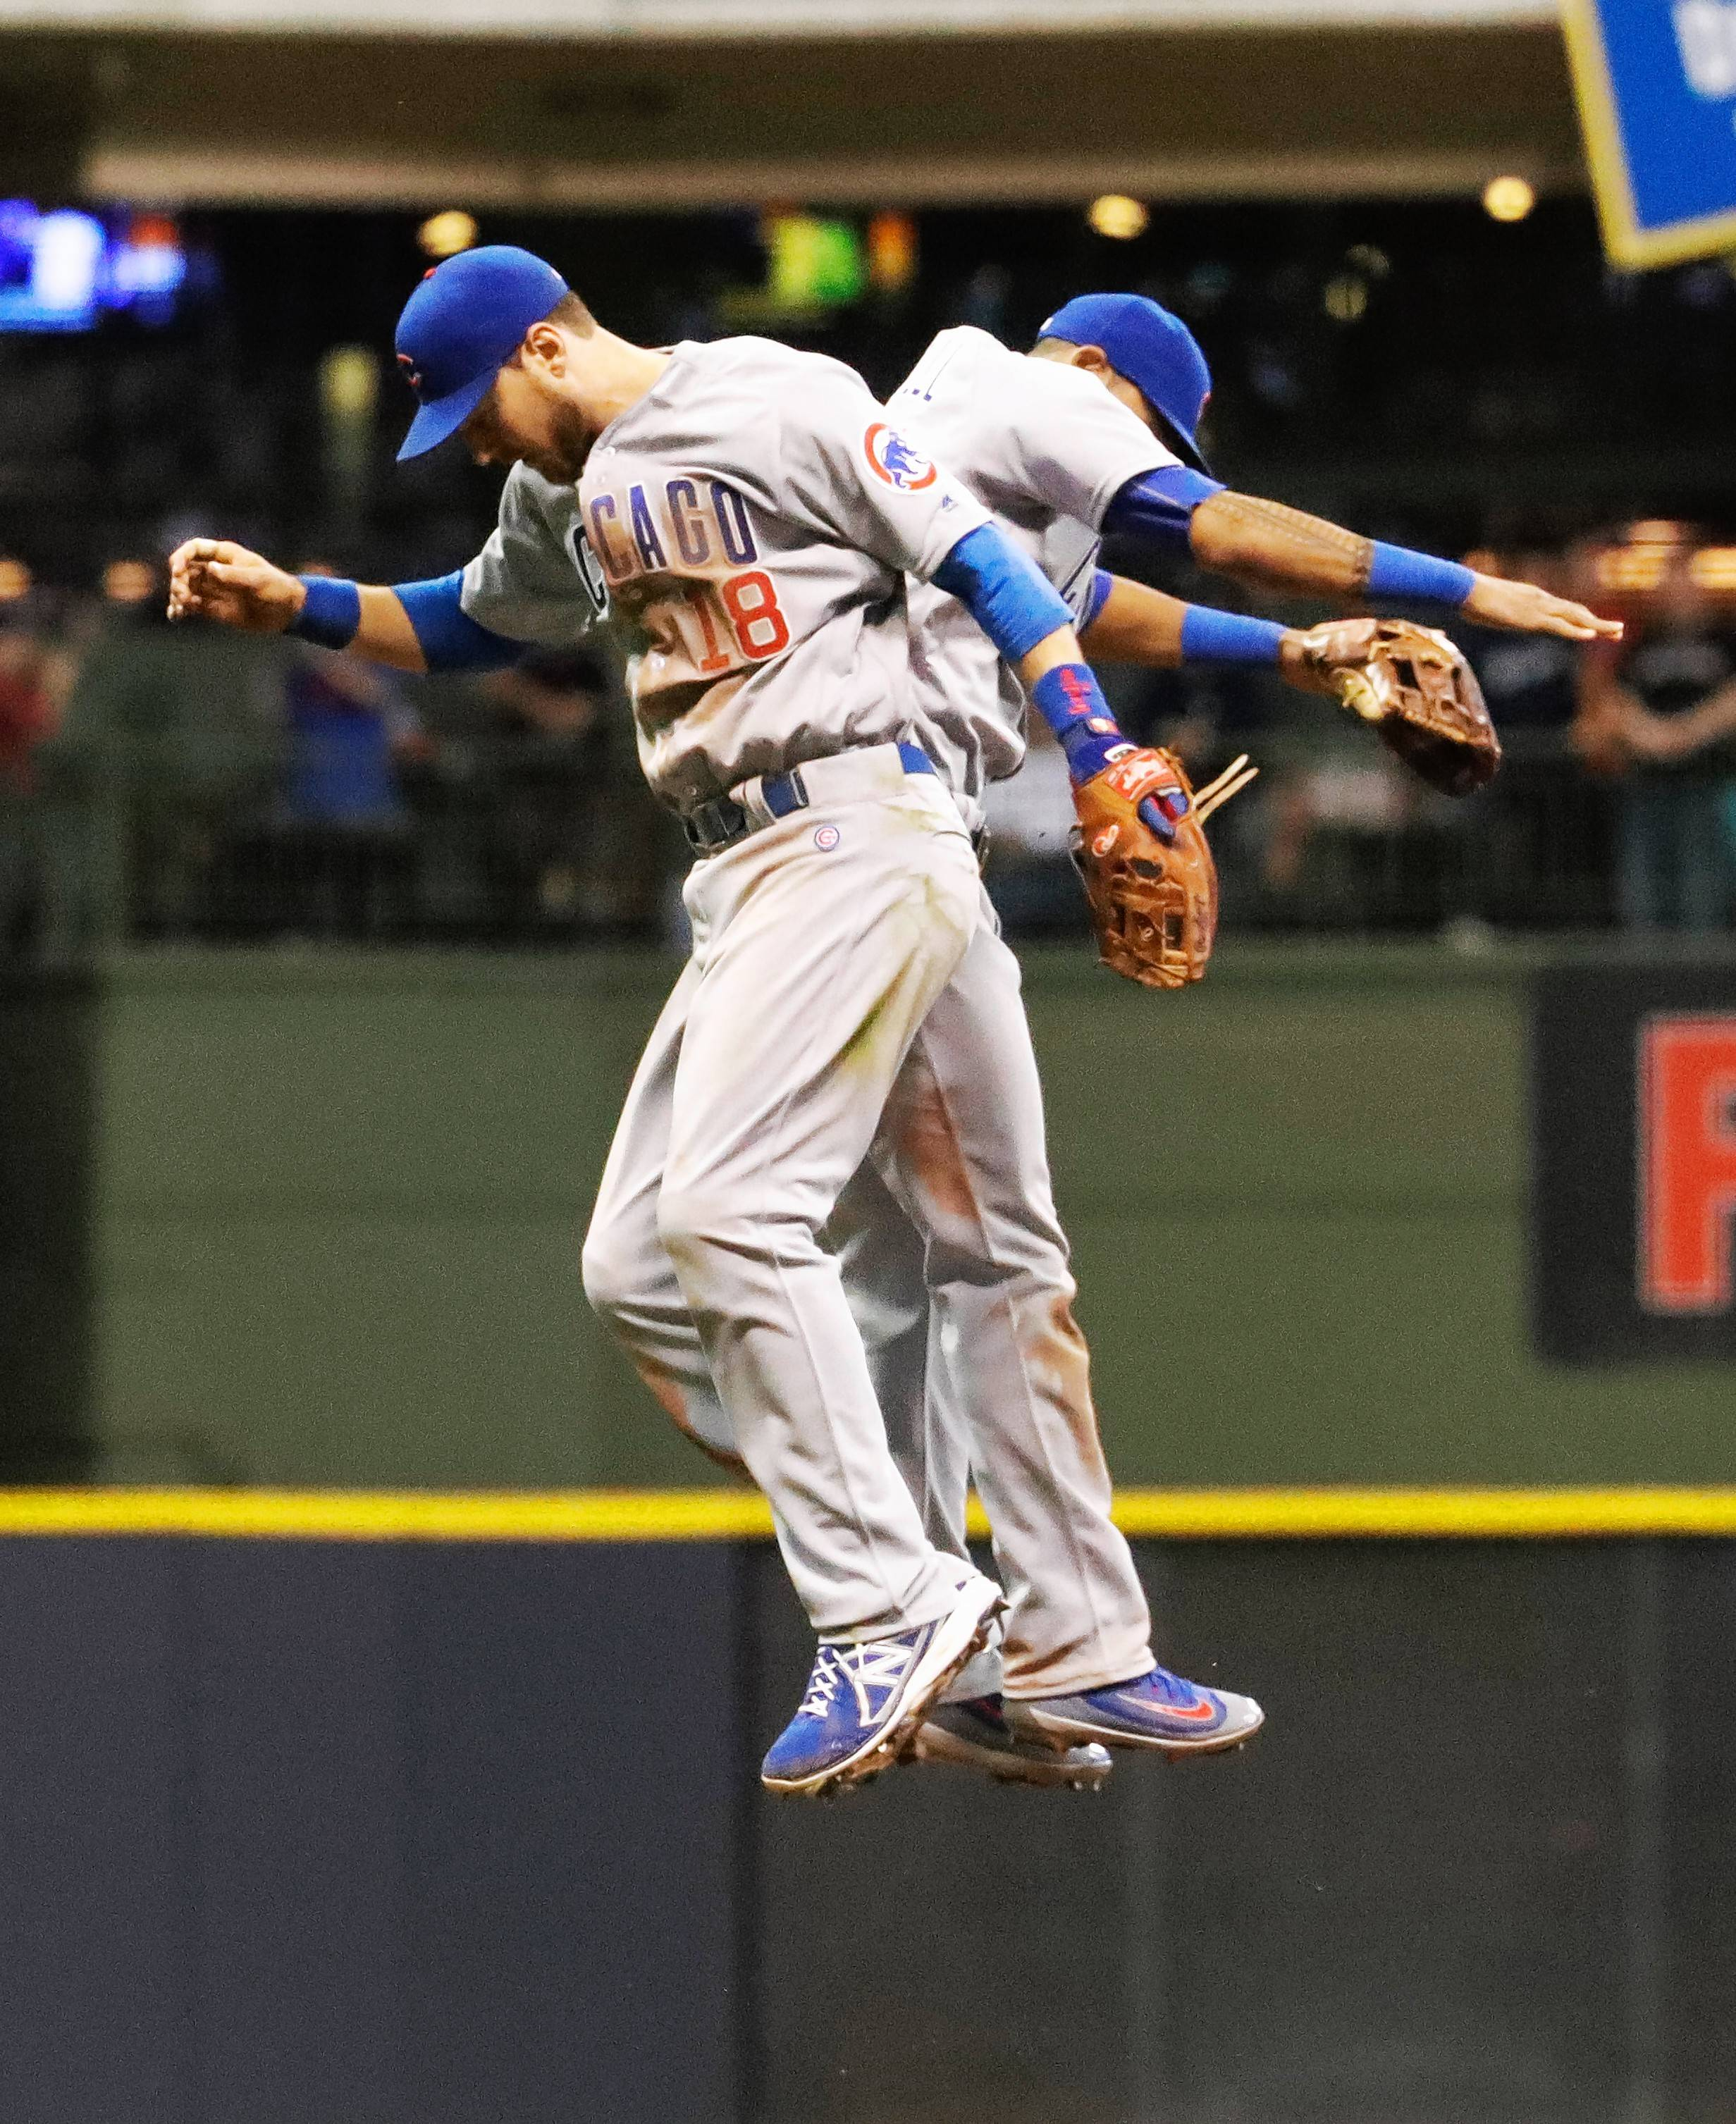 Chicago Cubs' Ben Zobrist (18) and Addison Russell celebrate after the 13th inning of a baseball game against the Milwaukee Brewers Thursday, May 19, 2016, in Milwaukee. The Cubs won 2-1. (AP Photo/Morry Gash)